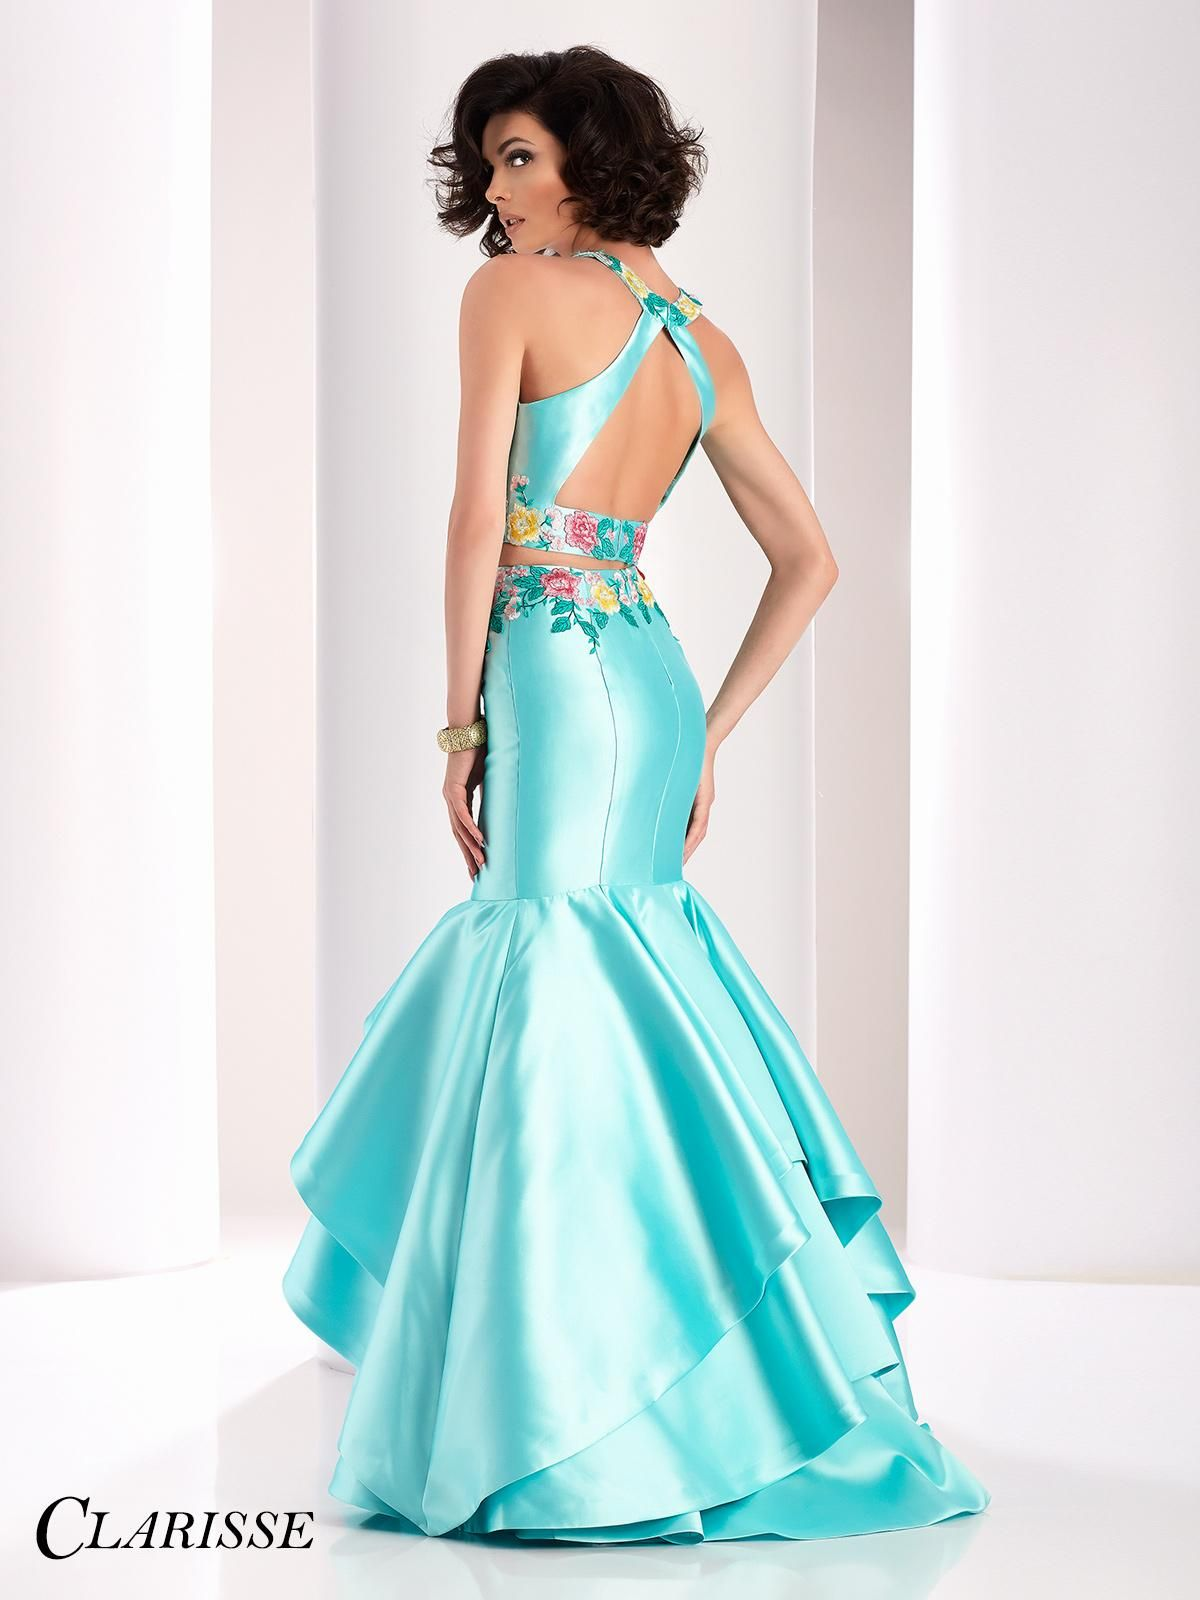 Clarisse two piece tiered mermaid prom dress make a statement